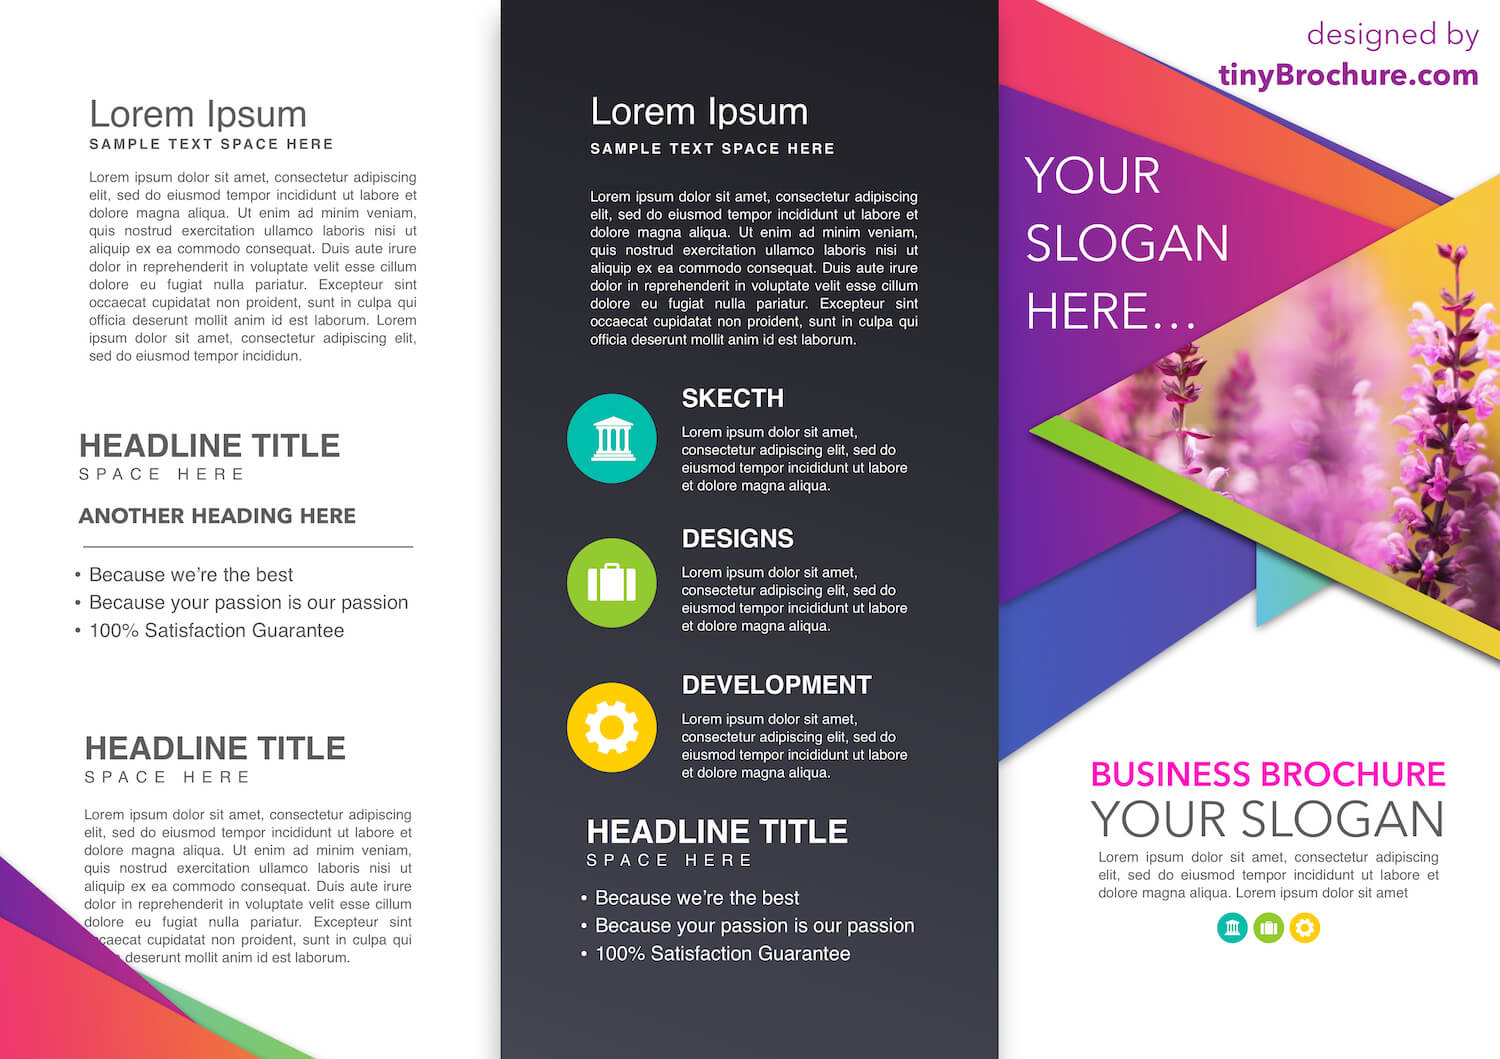 016 Template Ideas Brochure Templates Google Docs Slides with regard to Google Docs Travel Brochure Template